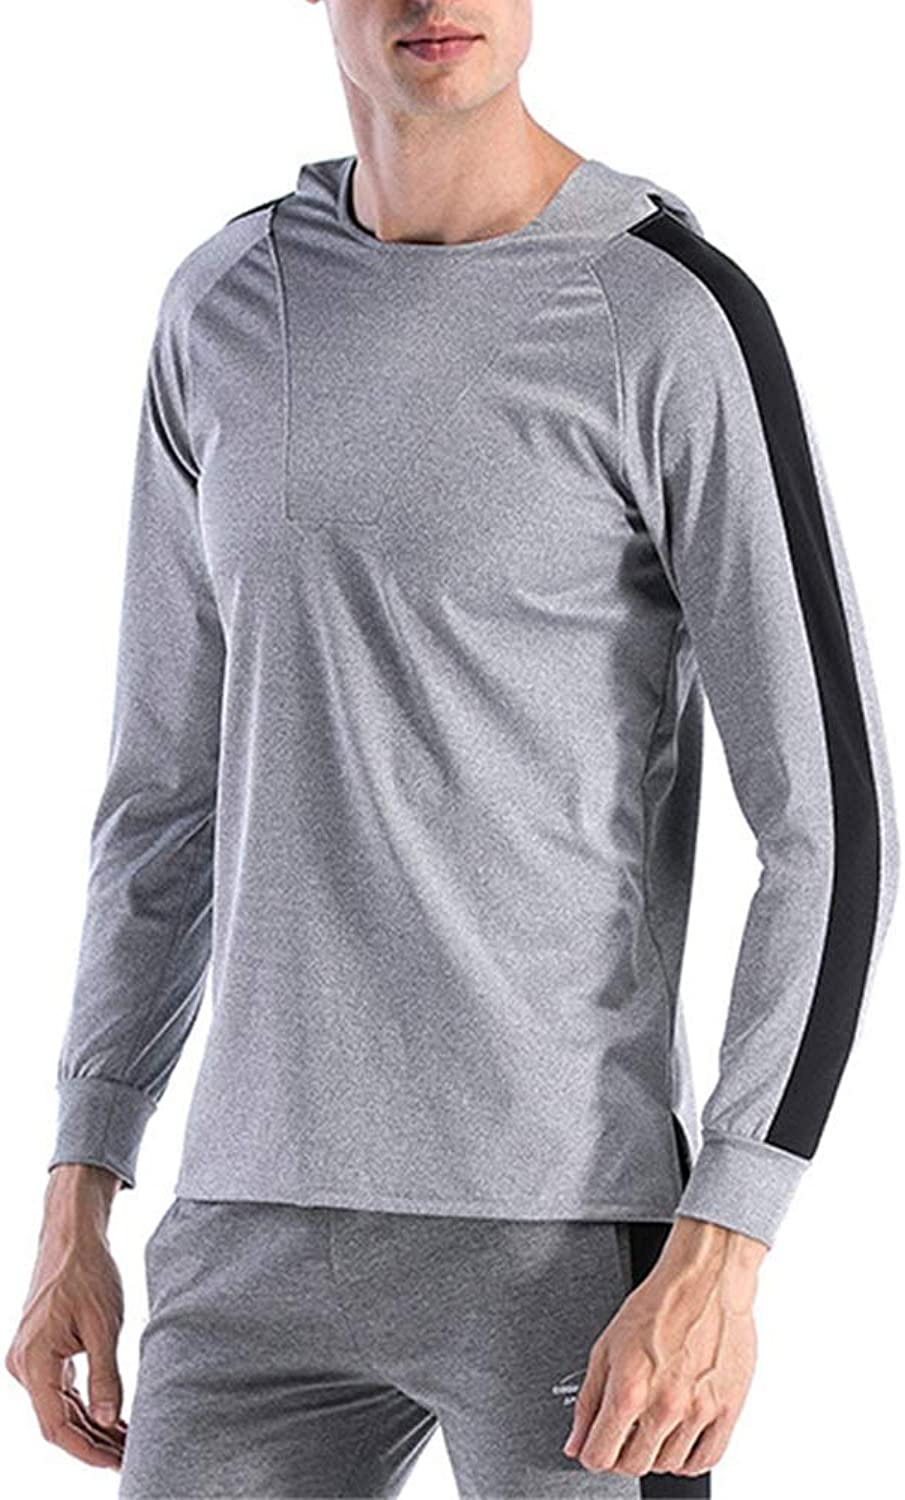 Men's Compression Tops Men's Shirt Running QuickDrying Jacket Even The Sweatshirt Compression Dry Sports Training Suit Men's Fitness Long Sleeve Shirt,Men's Fitness Lo (Size   L)